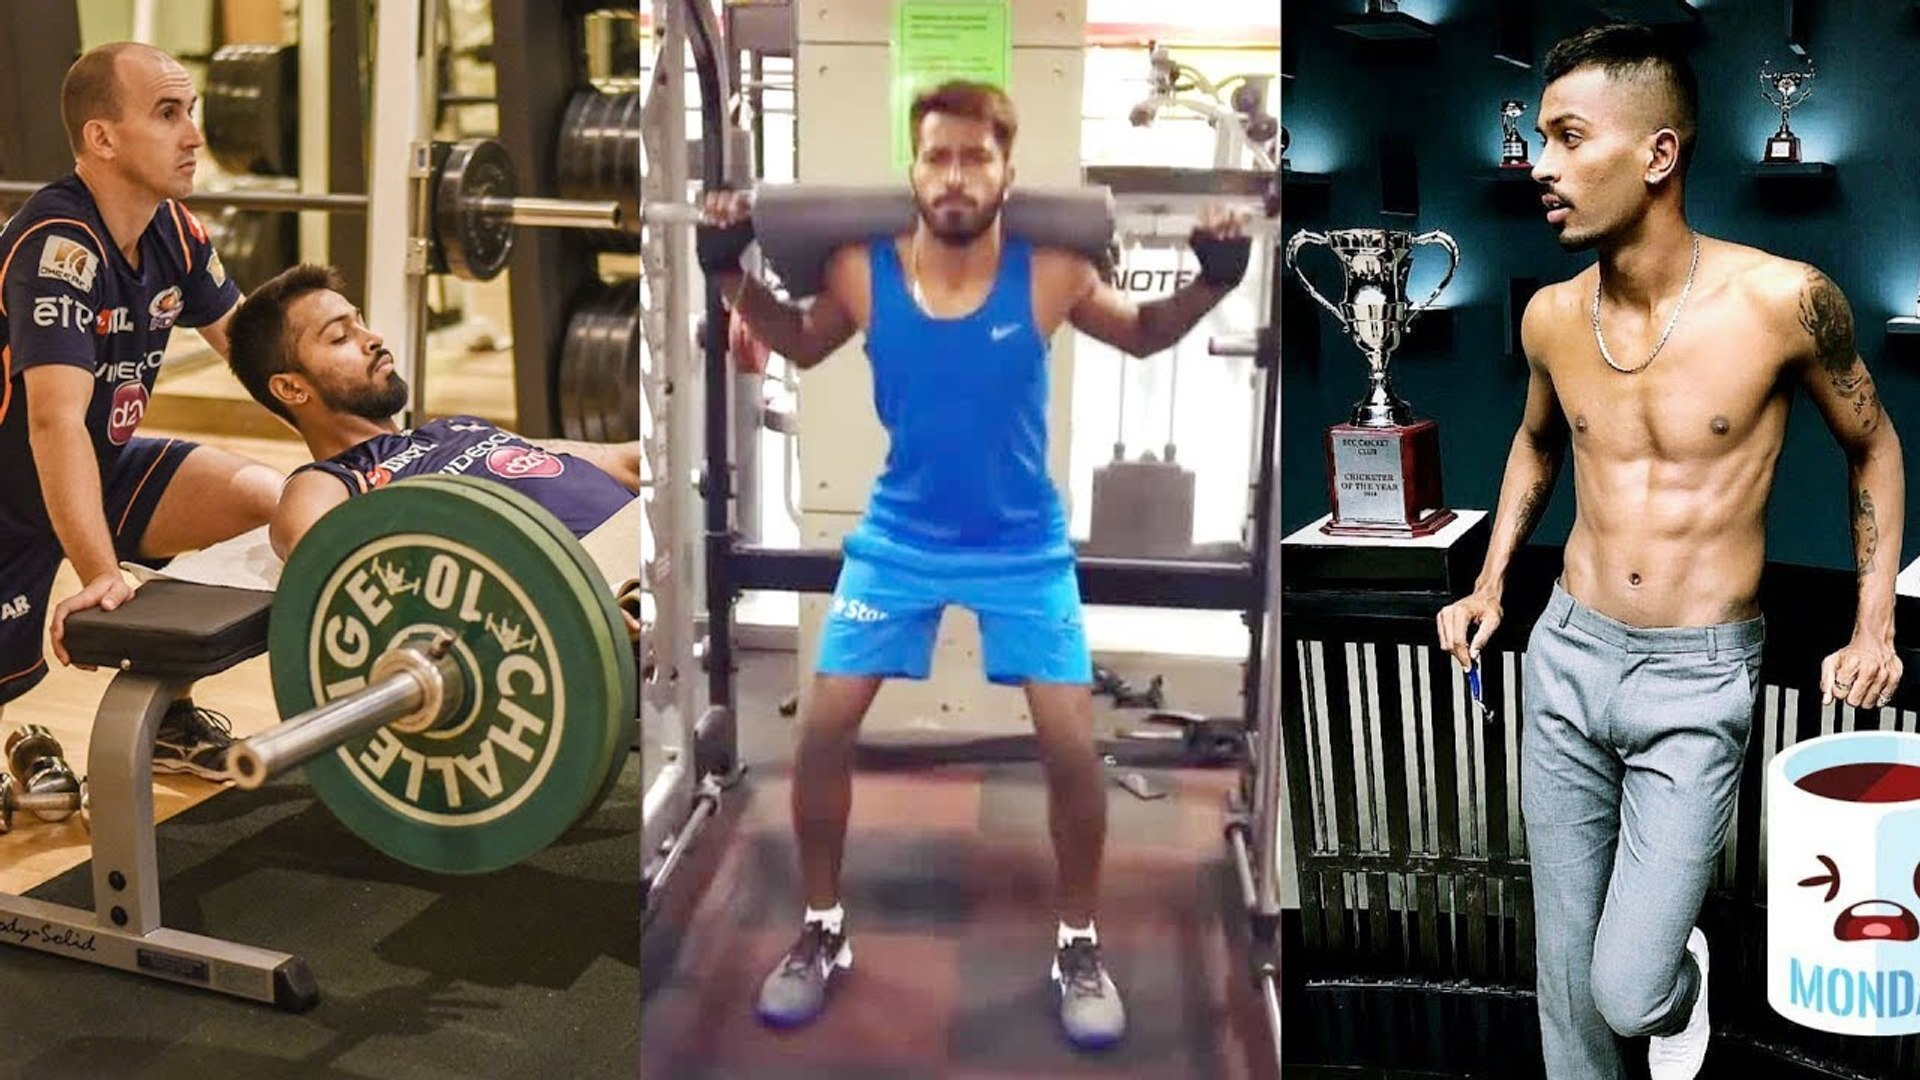 Hardik Pandya Workout For India Vs West indies World Cup 2019 Match